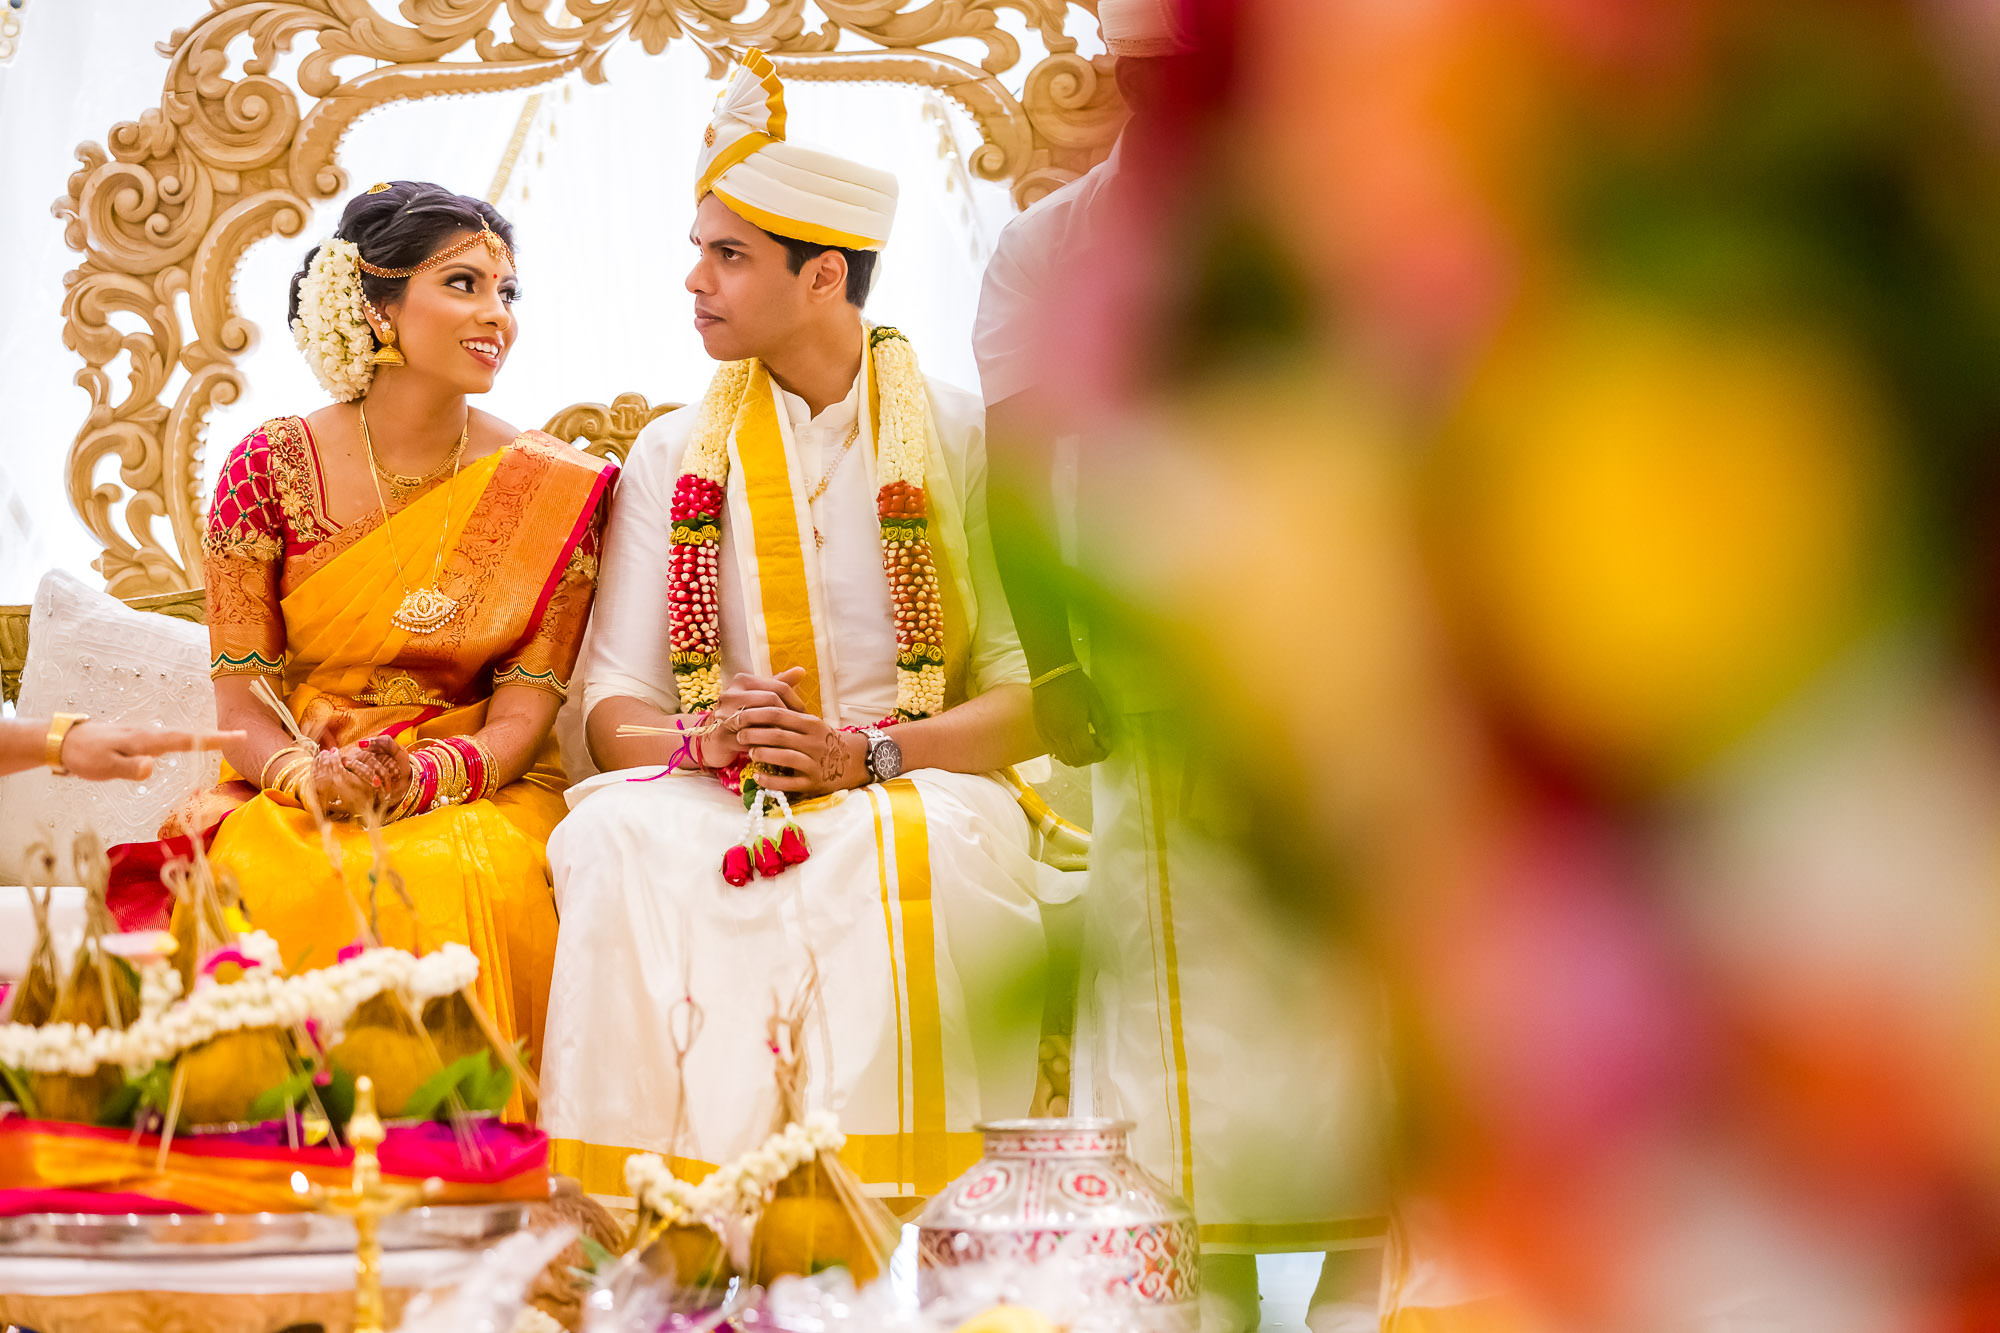 asian-wedding-hindu-tamil-photographer-heythorpe-oxford-0045.jpg